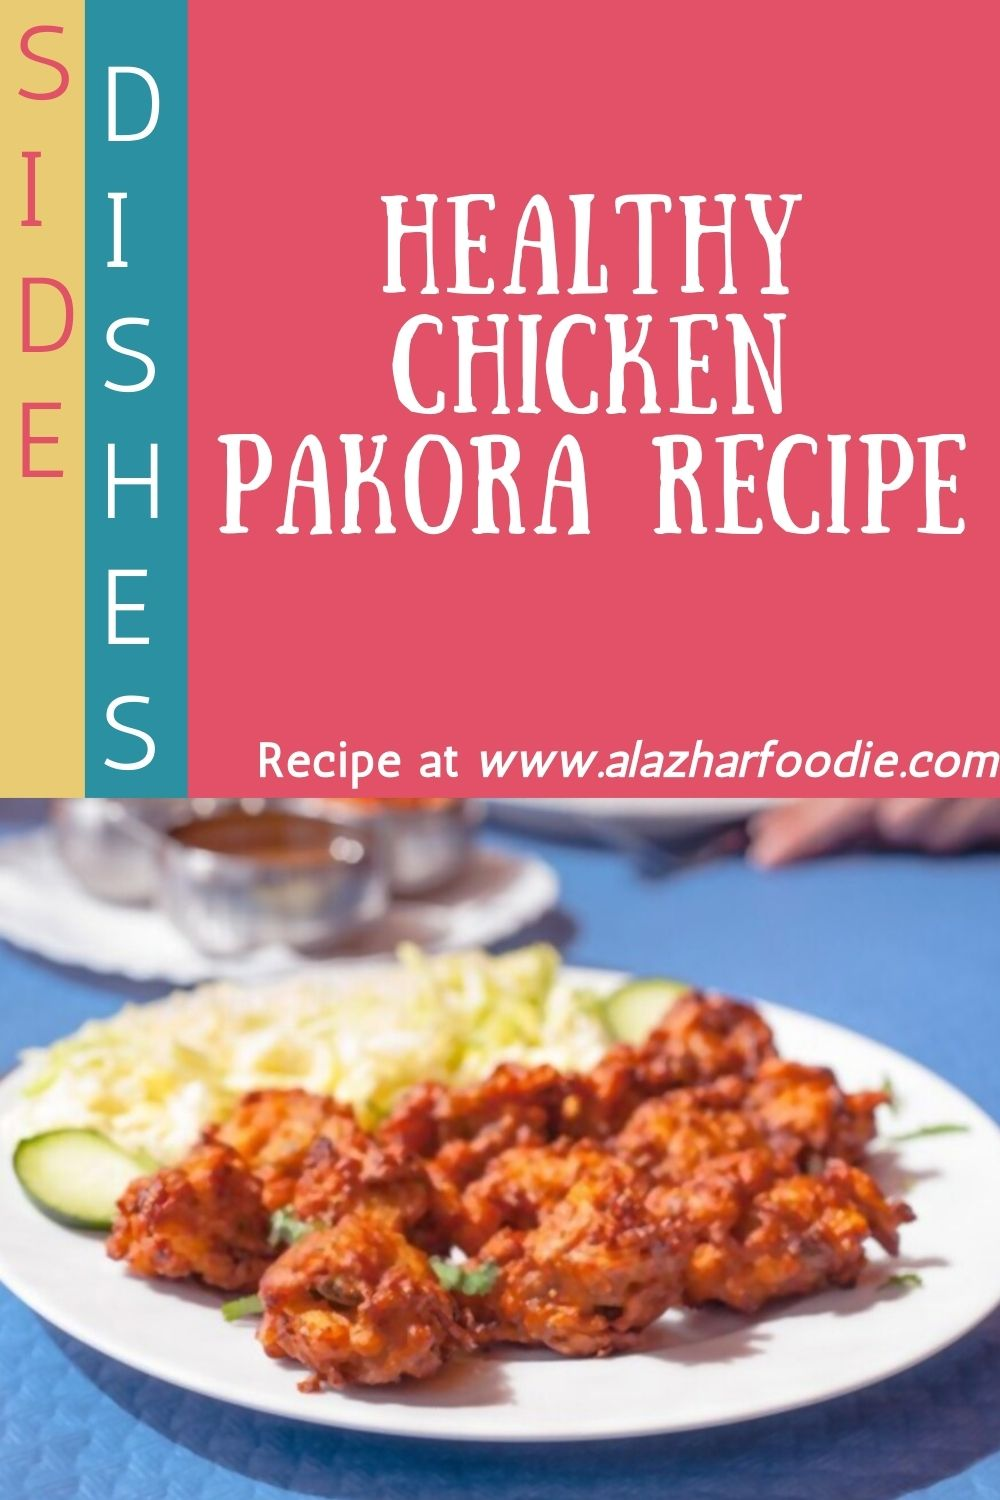 Recipe at www.alazharfoodie.com